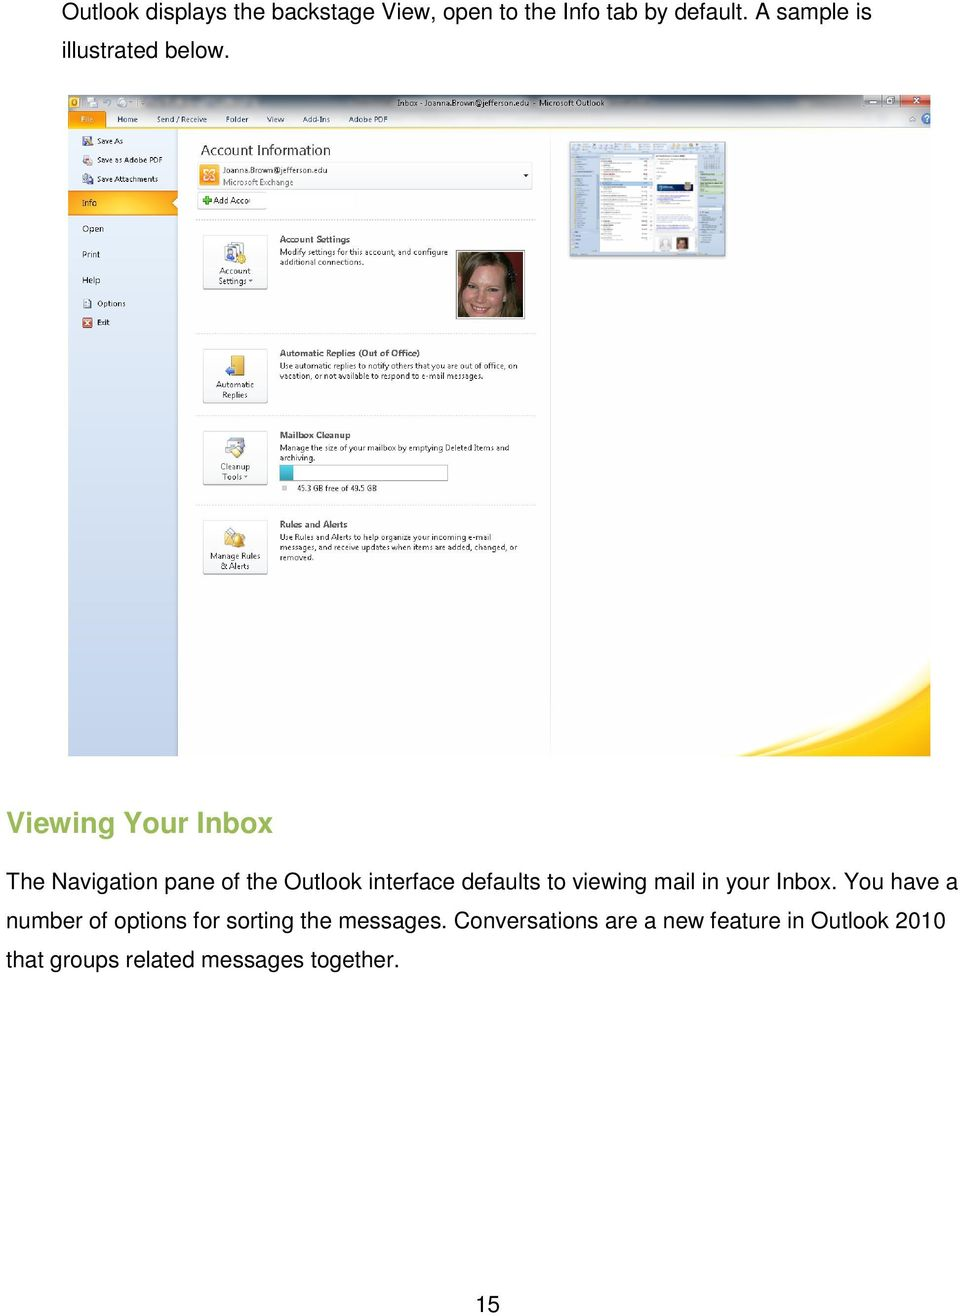 Viewing Your Inbox The Navigation pane of the Outlook interface defaults to viewing